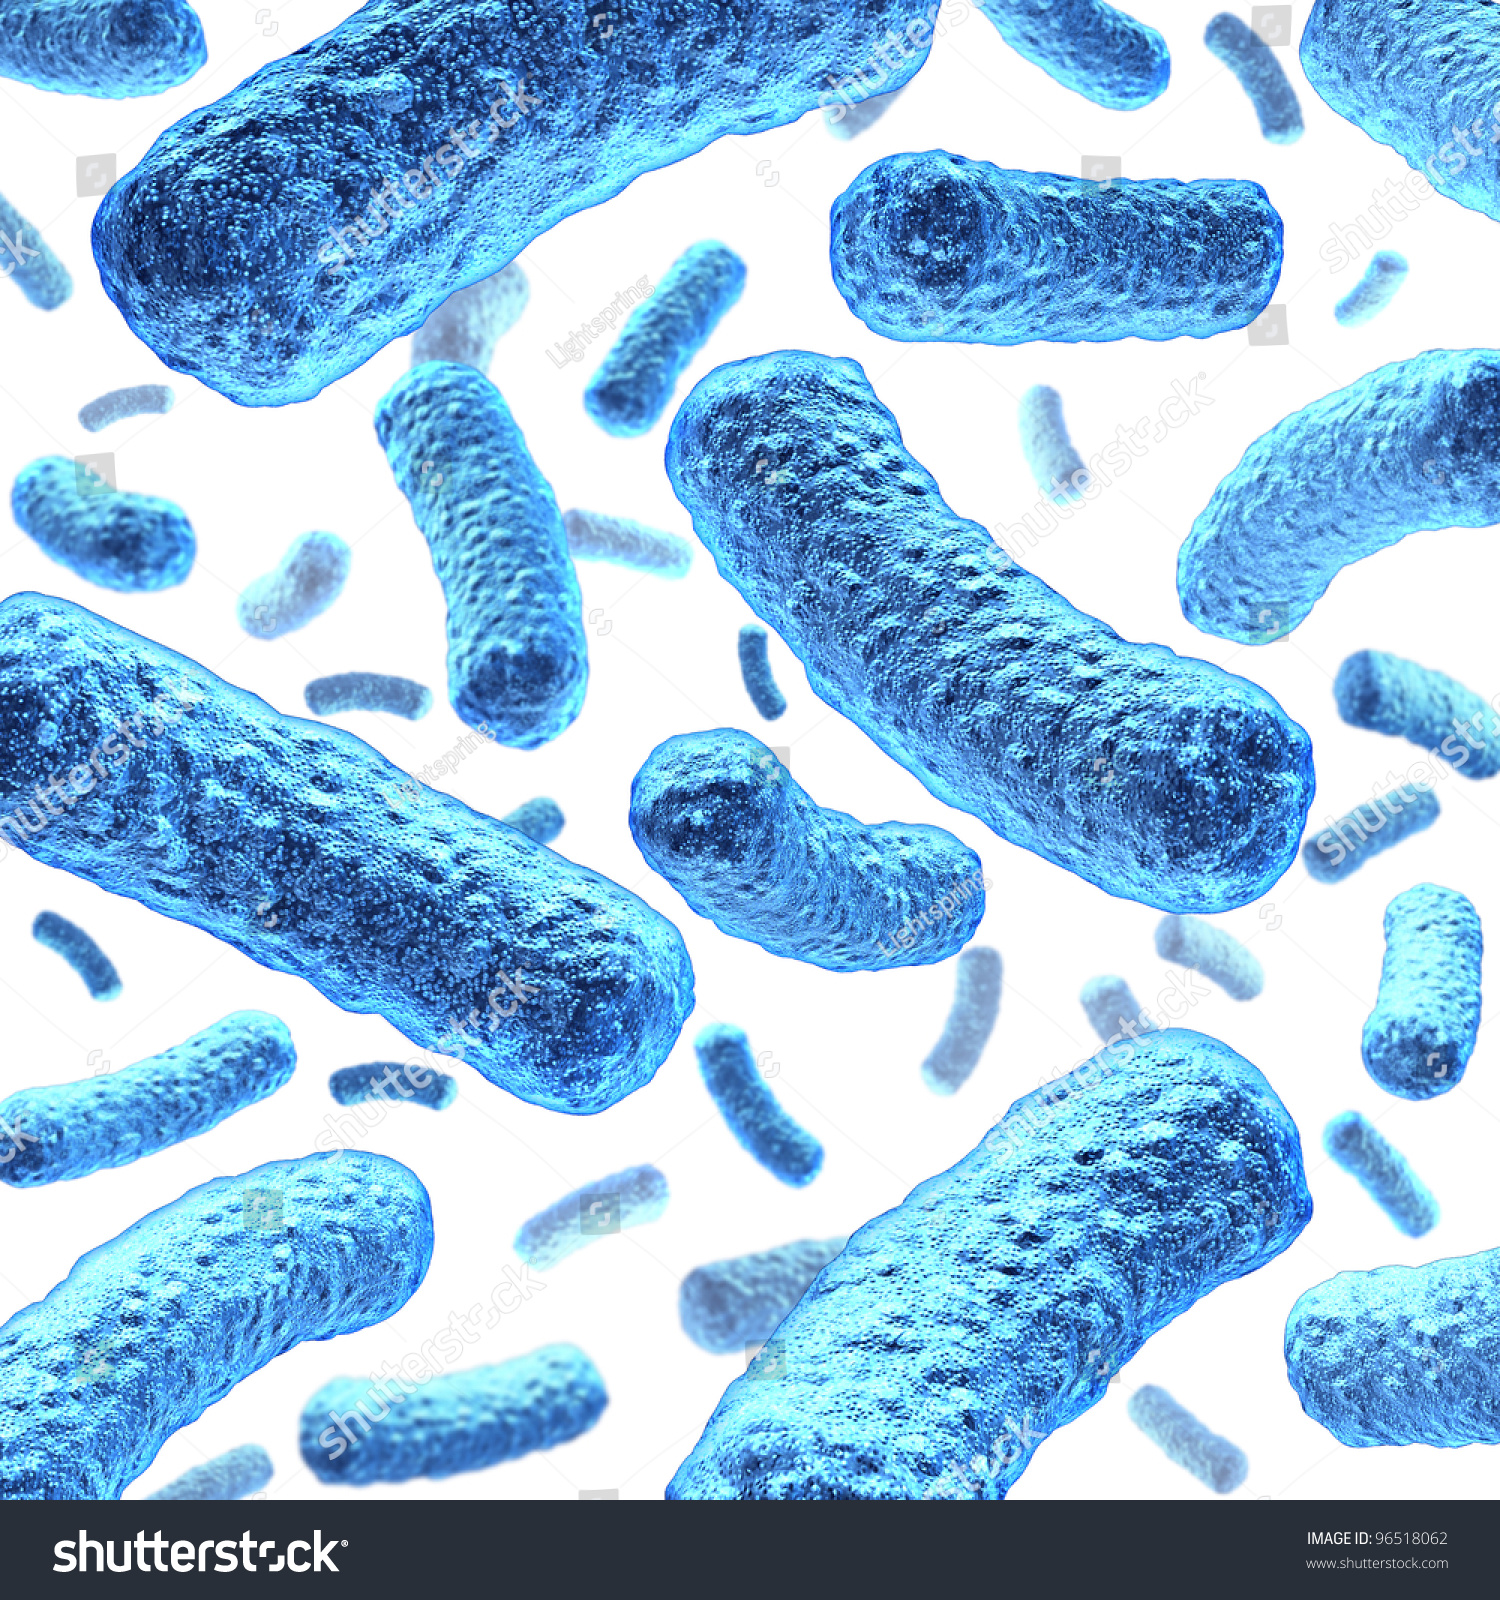 the personal opinion of the microscopic bacteria from space As a part of the genes in space-3 mission, astronauts on the space station last year touched a petri plate to surfaces on the space station and grew the bacteria found there into colonies, which.